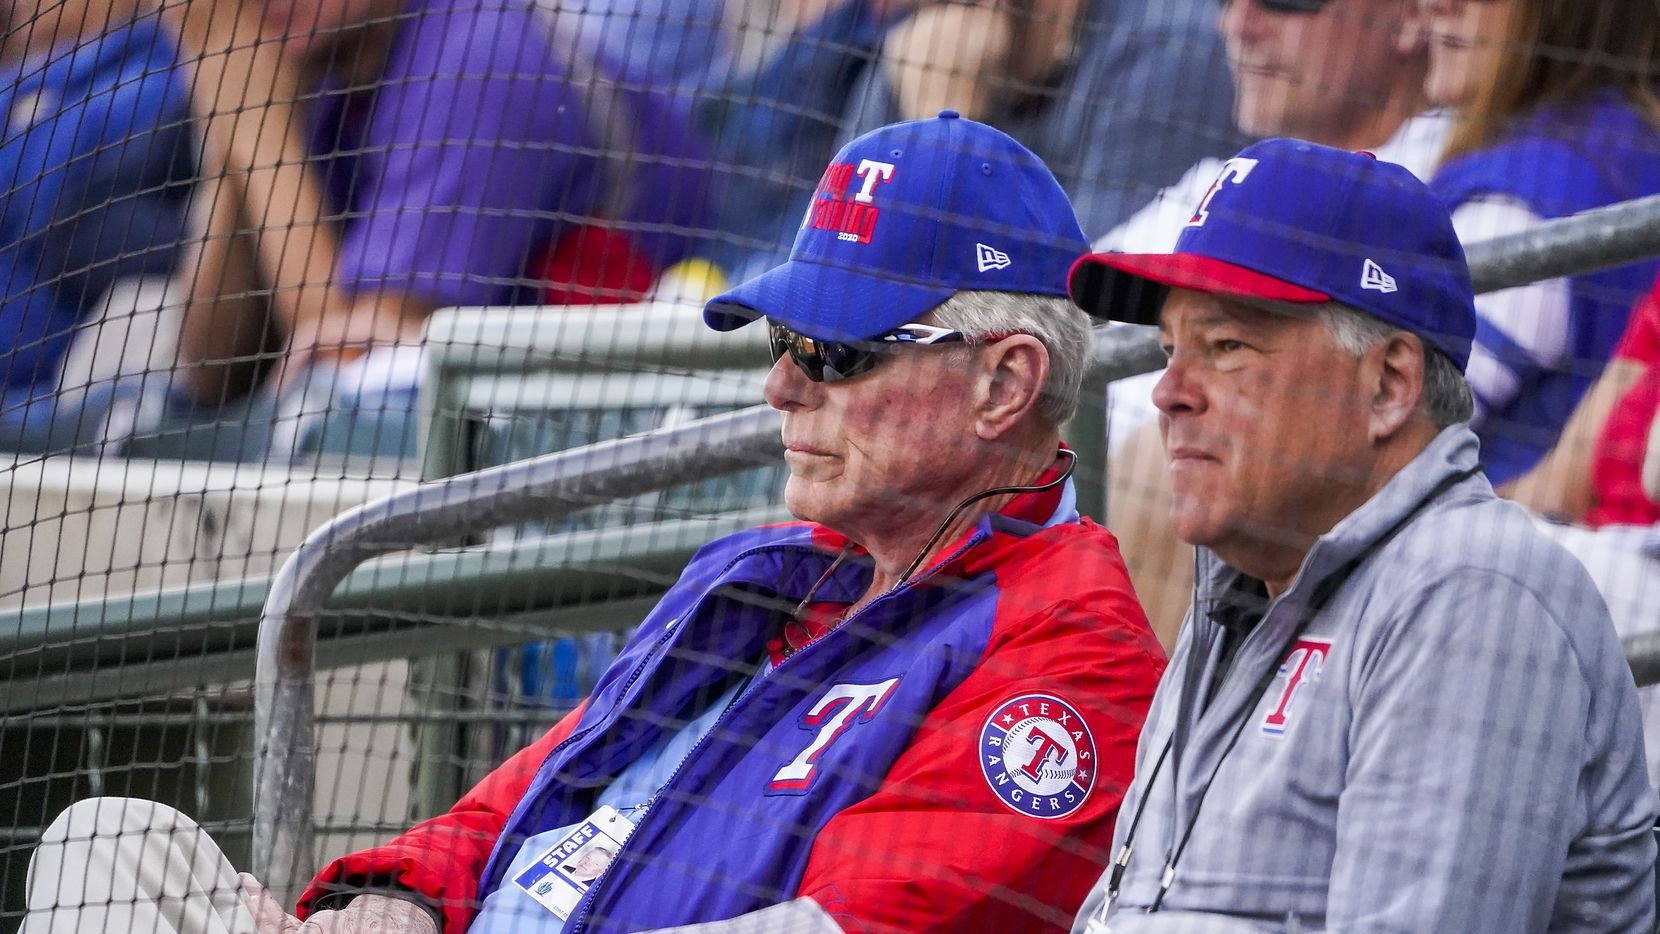 FILE — Texas Rangers co-chairman and managing partner Ray C. Davis (left) and chairman, ownership committee and chief operating officer Neil Leibman watch during the third inning of a spring training game against the Chicago Cubs at Surprise Stadium on Thursday, Feb. 27, 2020, in Surprise, Ariz.